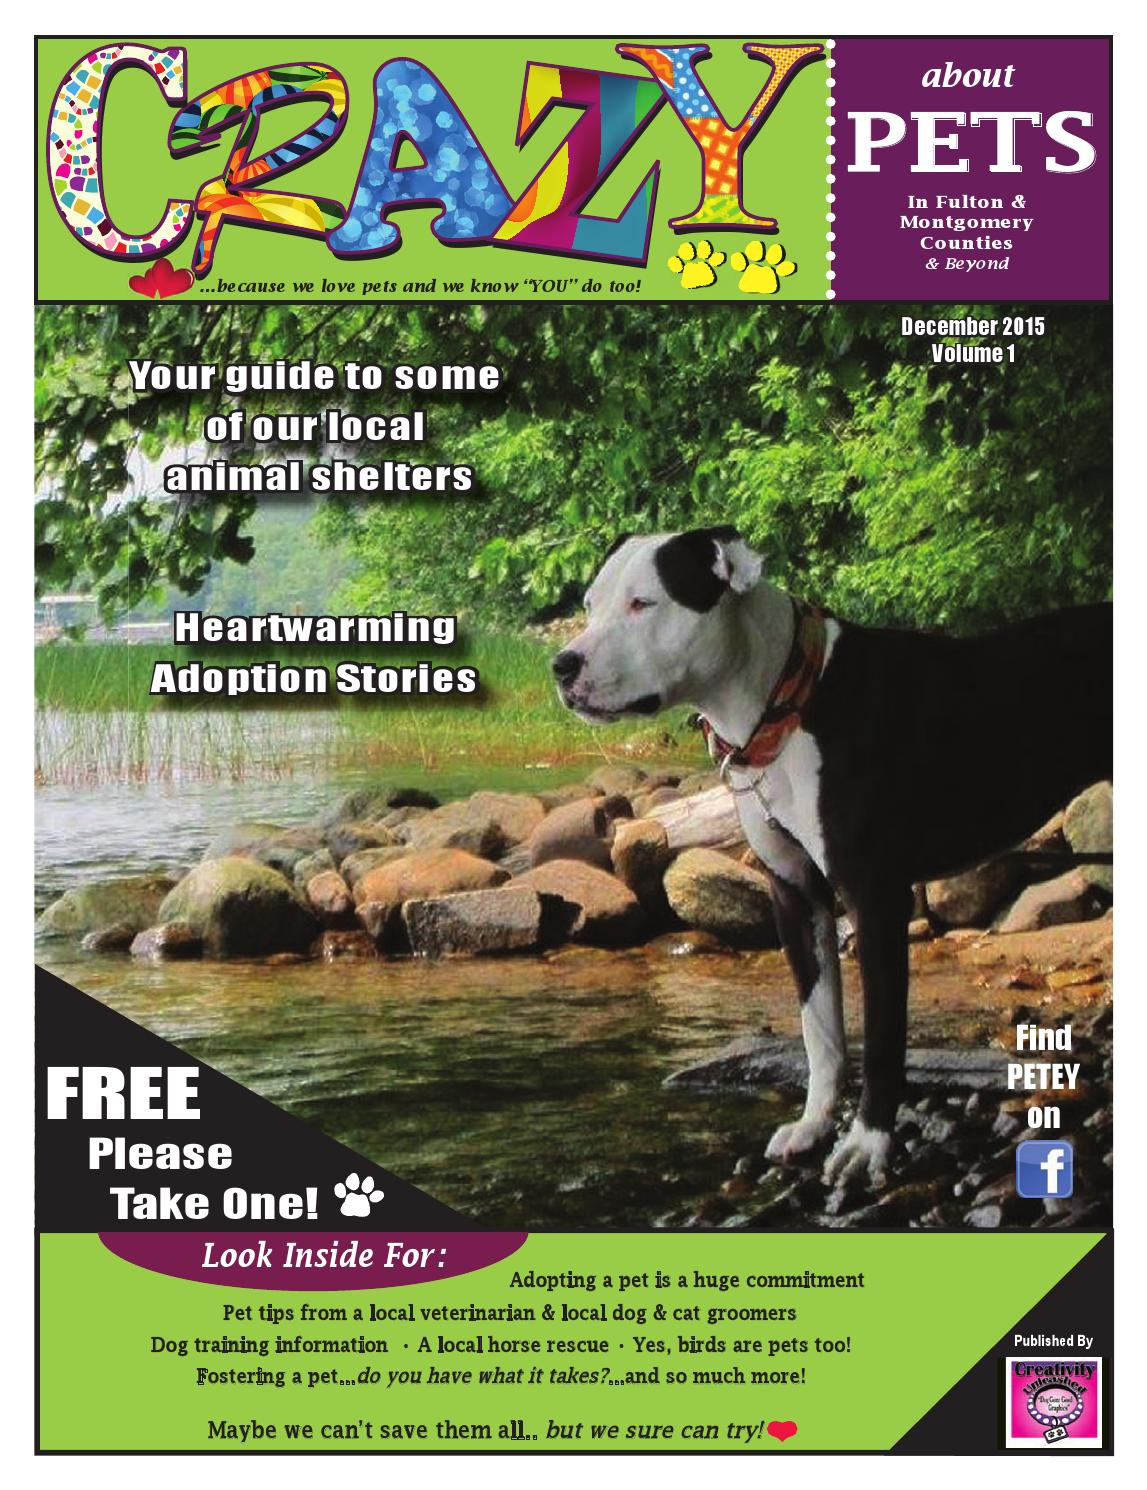 Contact Us - Staffordshire Terrier Club of America